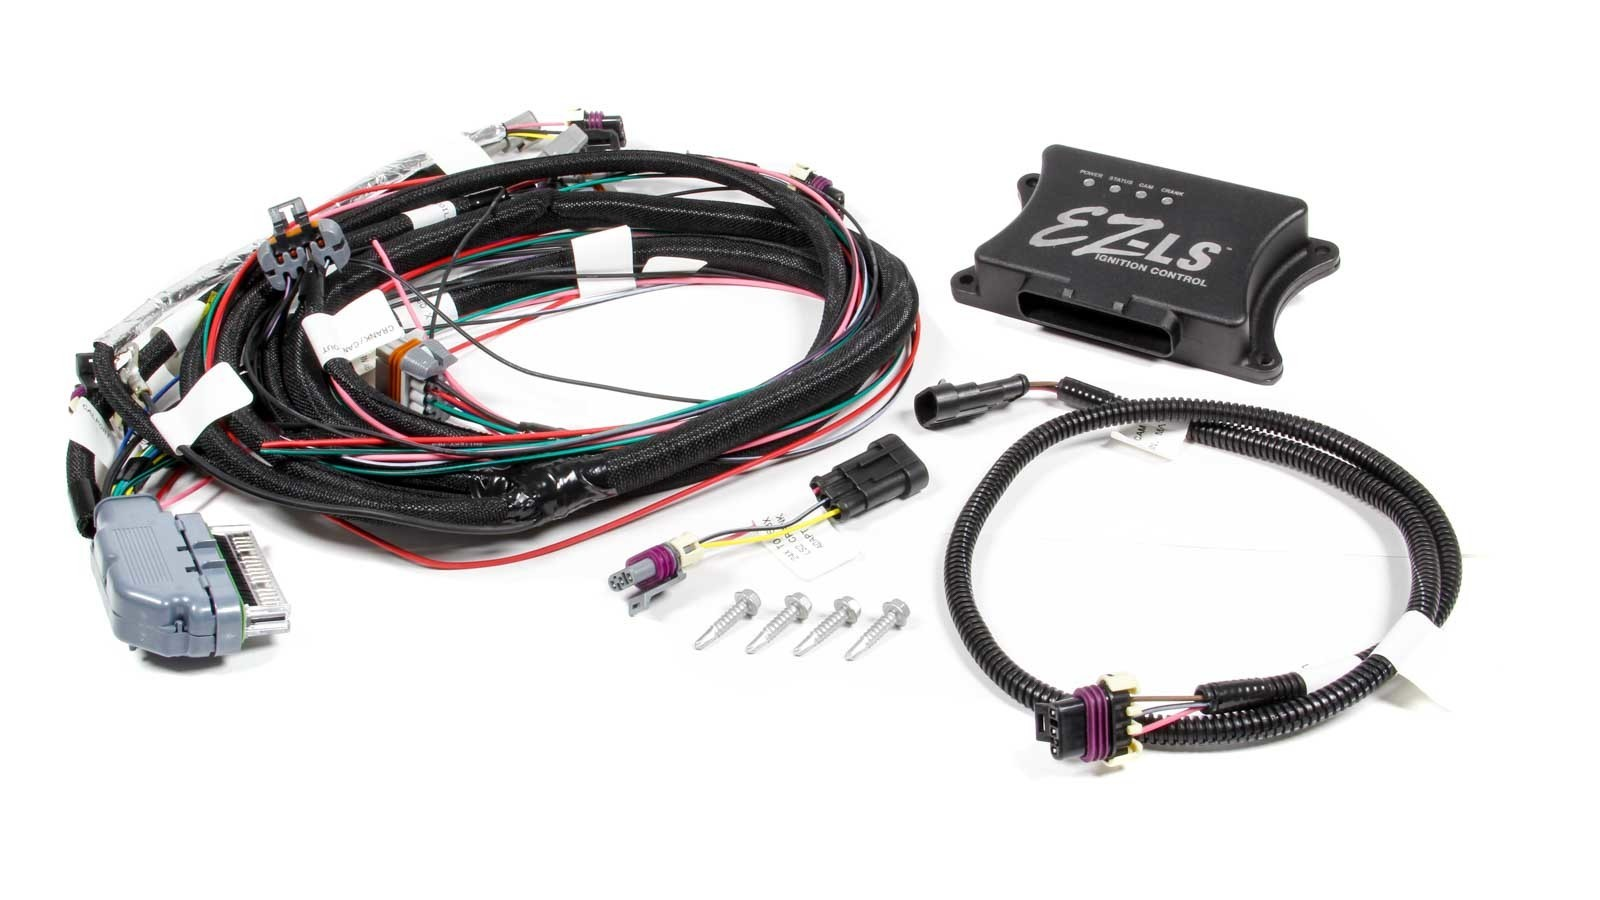 [DIAGRAM_5LK]  Fast Electronics 301312E Ignition Controller, EZ-LS, Coil-On-Plug, Wiring  Harness Included, 24/58 Tooth Reluctor, GM LS-Series, Kit | Fast Wiring Harness |  | Dan Hellmer Racing Solutions